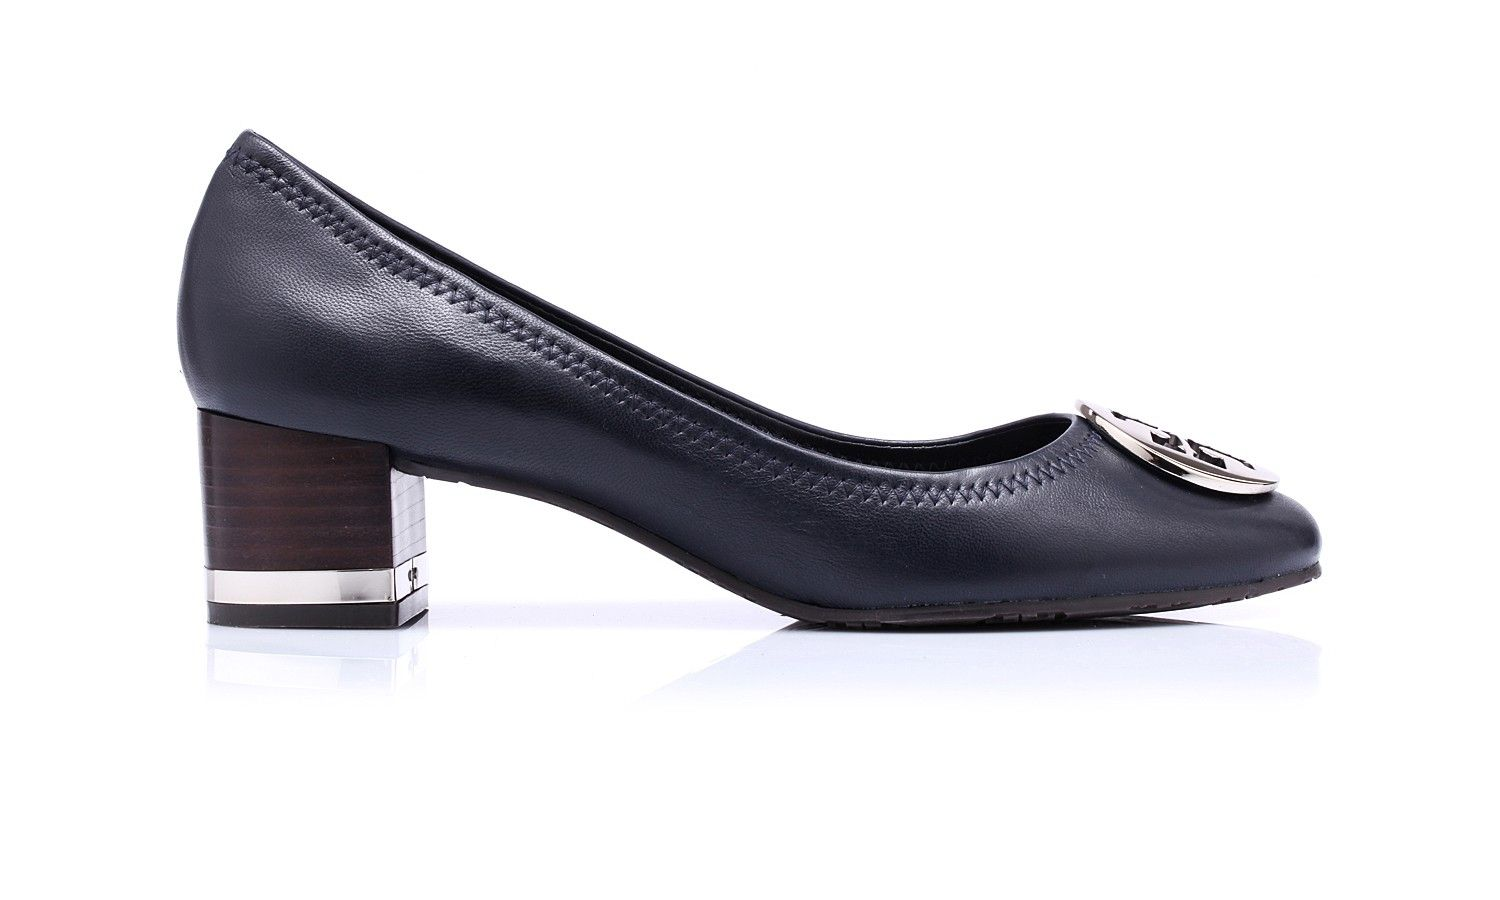 81d0d5f74 Amy Pump by @Victoria McCoy Burch. Leather pumps with wood and metal stripe  heels and leather sole.